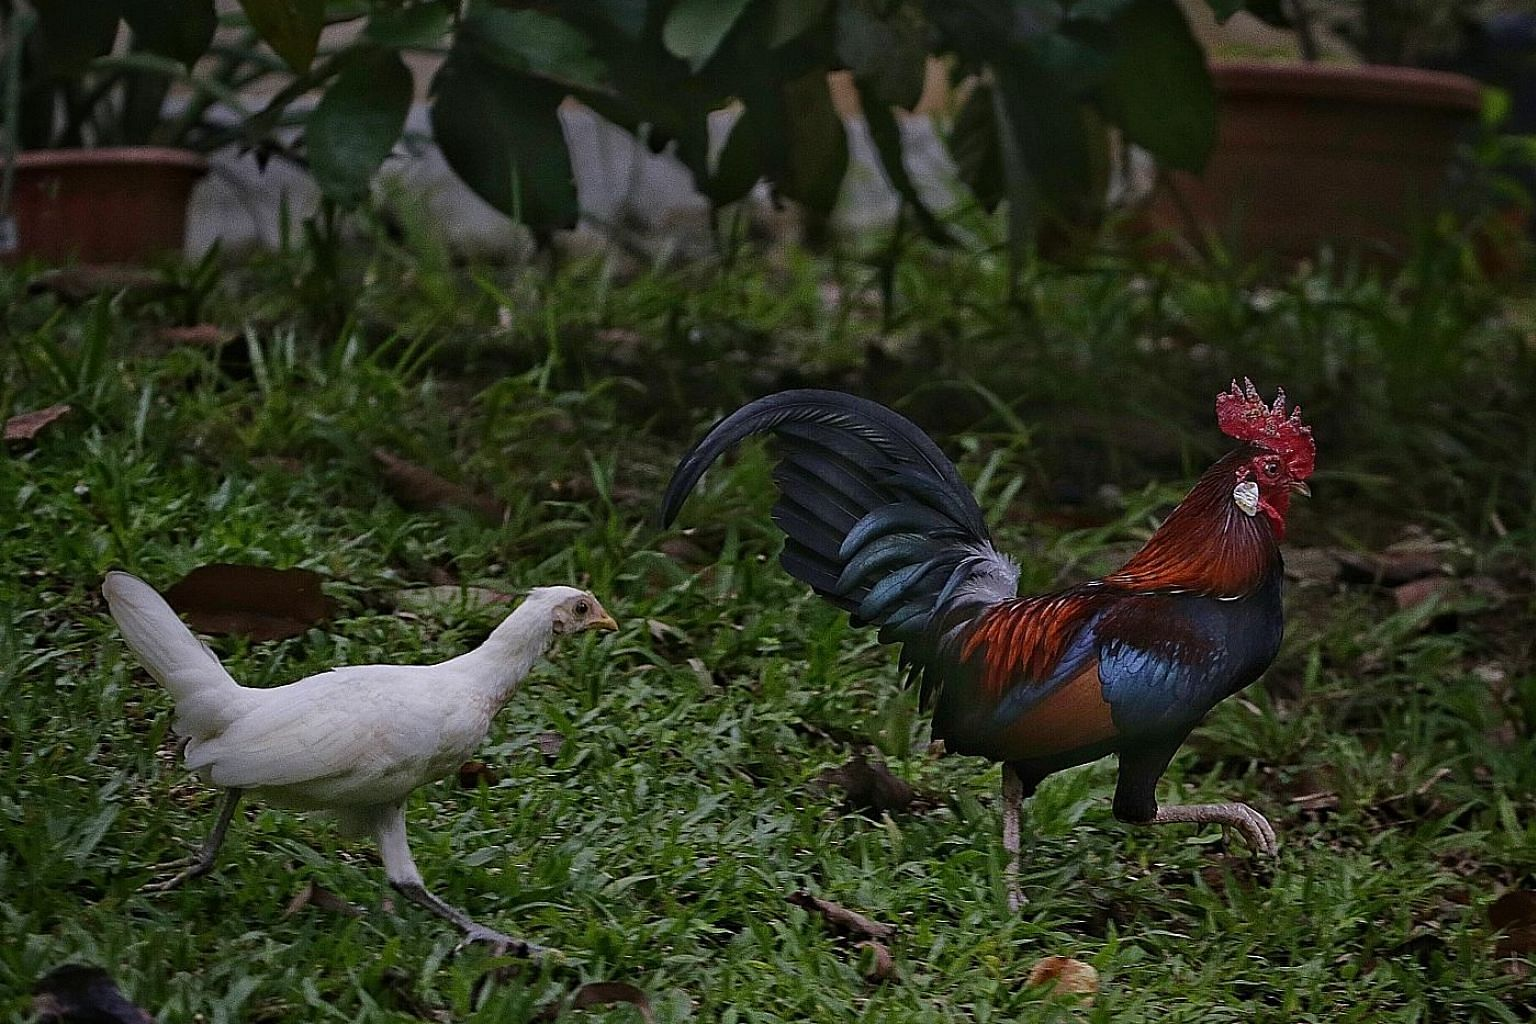 A female hybrid (left) and a male red junglefowl seen in Pasir Ris yesterday. AVA killed 24 free-roaming chickens in Sin Ming after residents complained about noise.